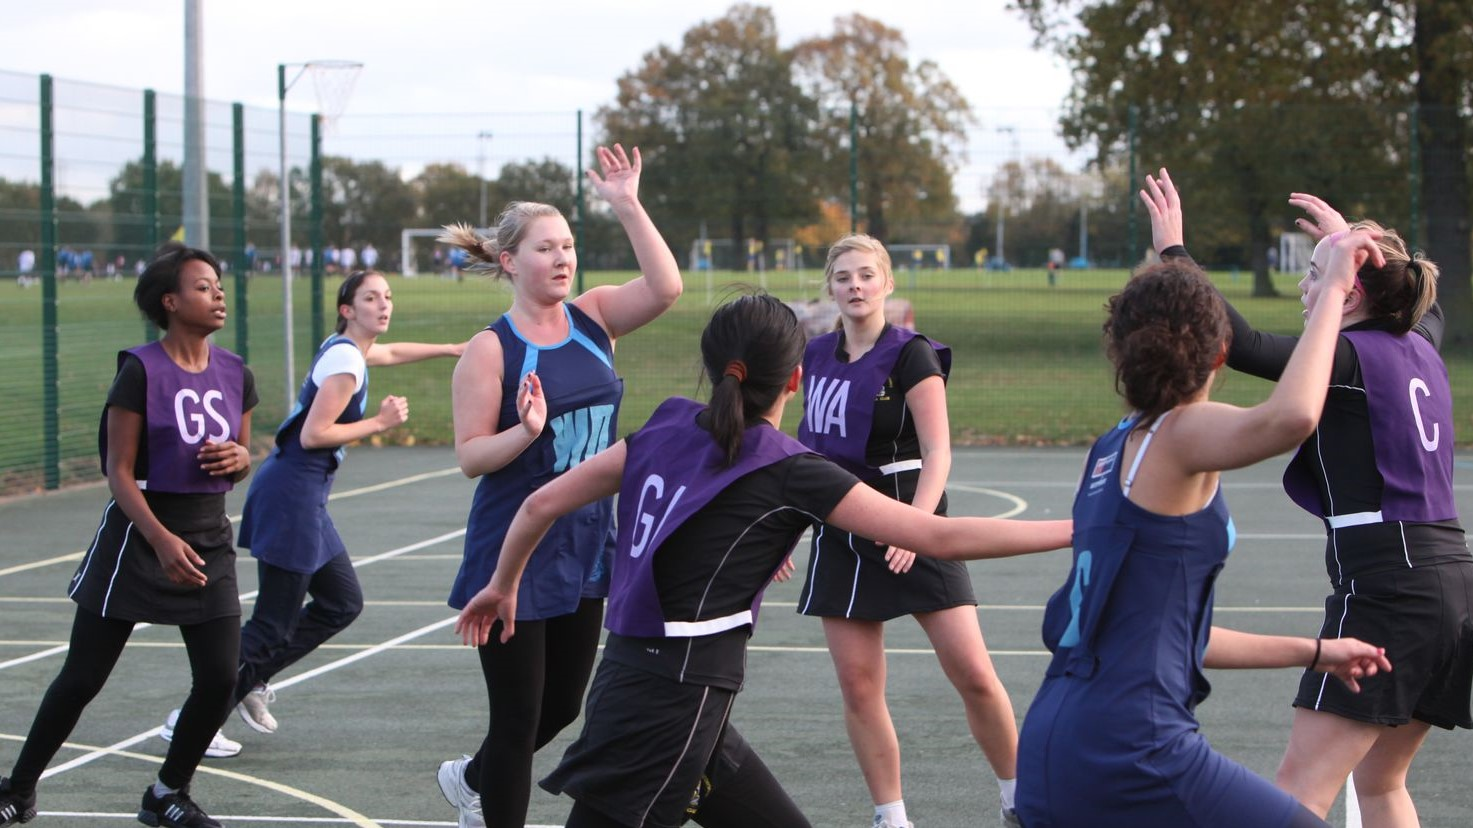 LSE Netball team during a match at the LSE Sportsground in New Malden, Surrey